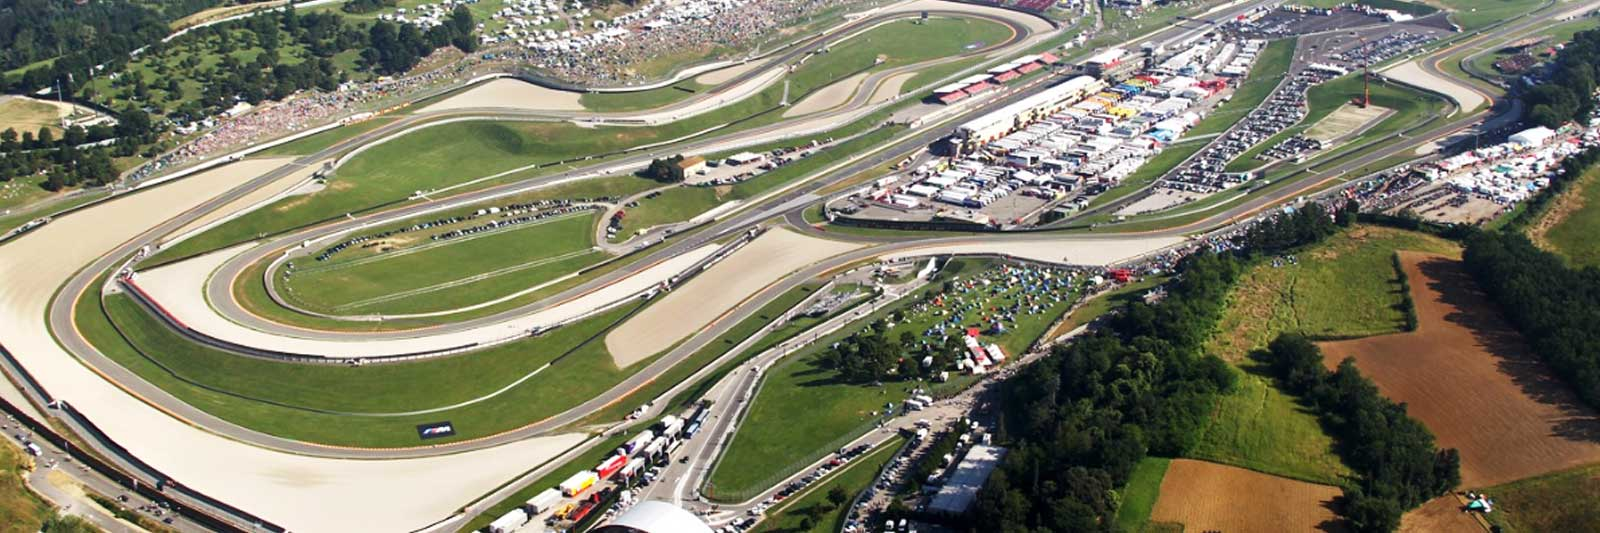 Mugello MotoGP with Grand Prix Tours.